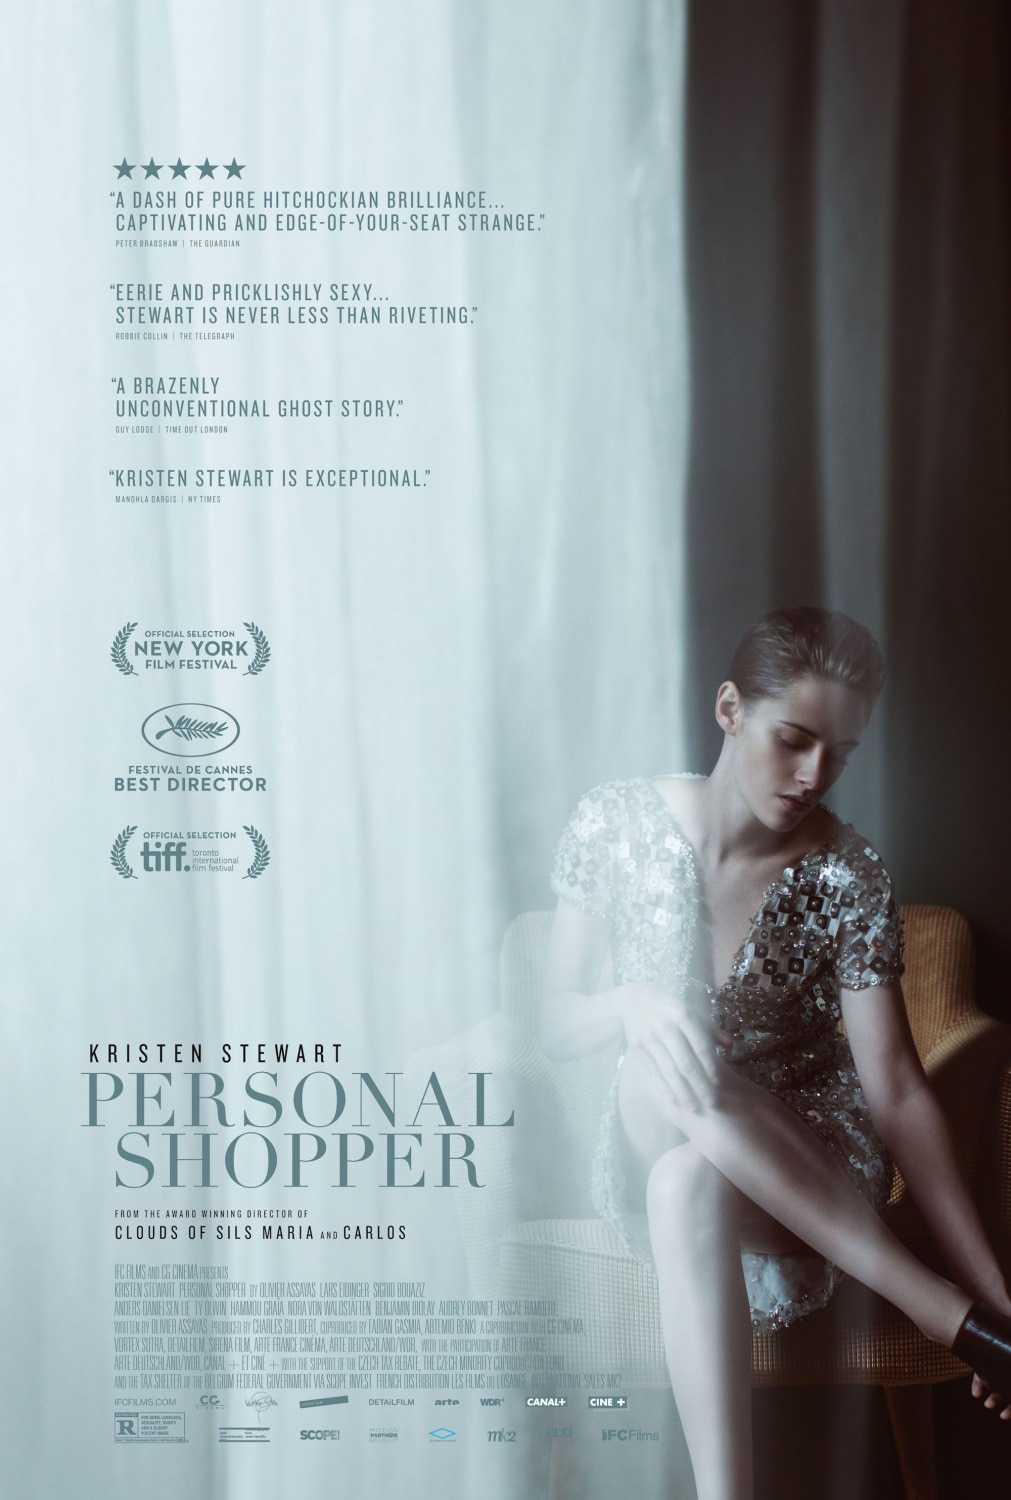 personal shopper 1 - New Personal Shopper Trailer Heads in from Across the Pond